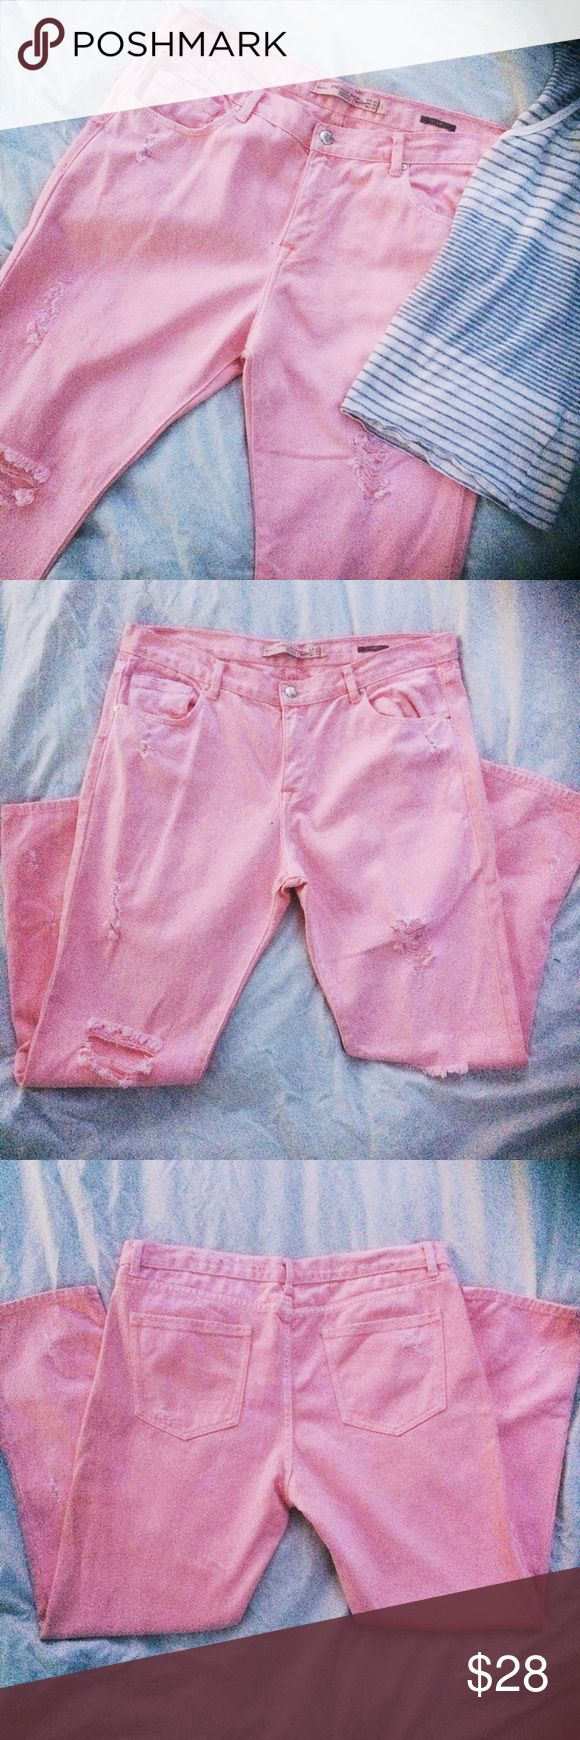 Zara Distressed Pink Slim Jeans Zara Trafaluc Premium Wash Slim Jeans in Pink. These are distressed as shown in pictures. Size 8. Perfect for spring and summer fundays. Zara Jeans Skinny